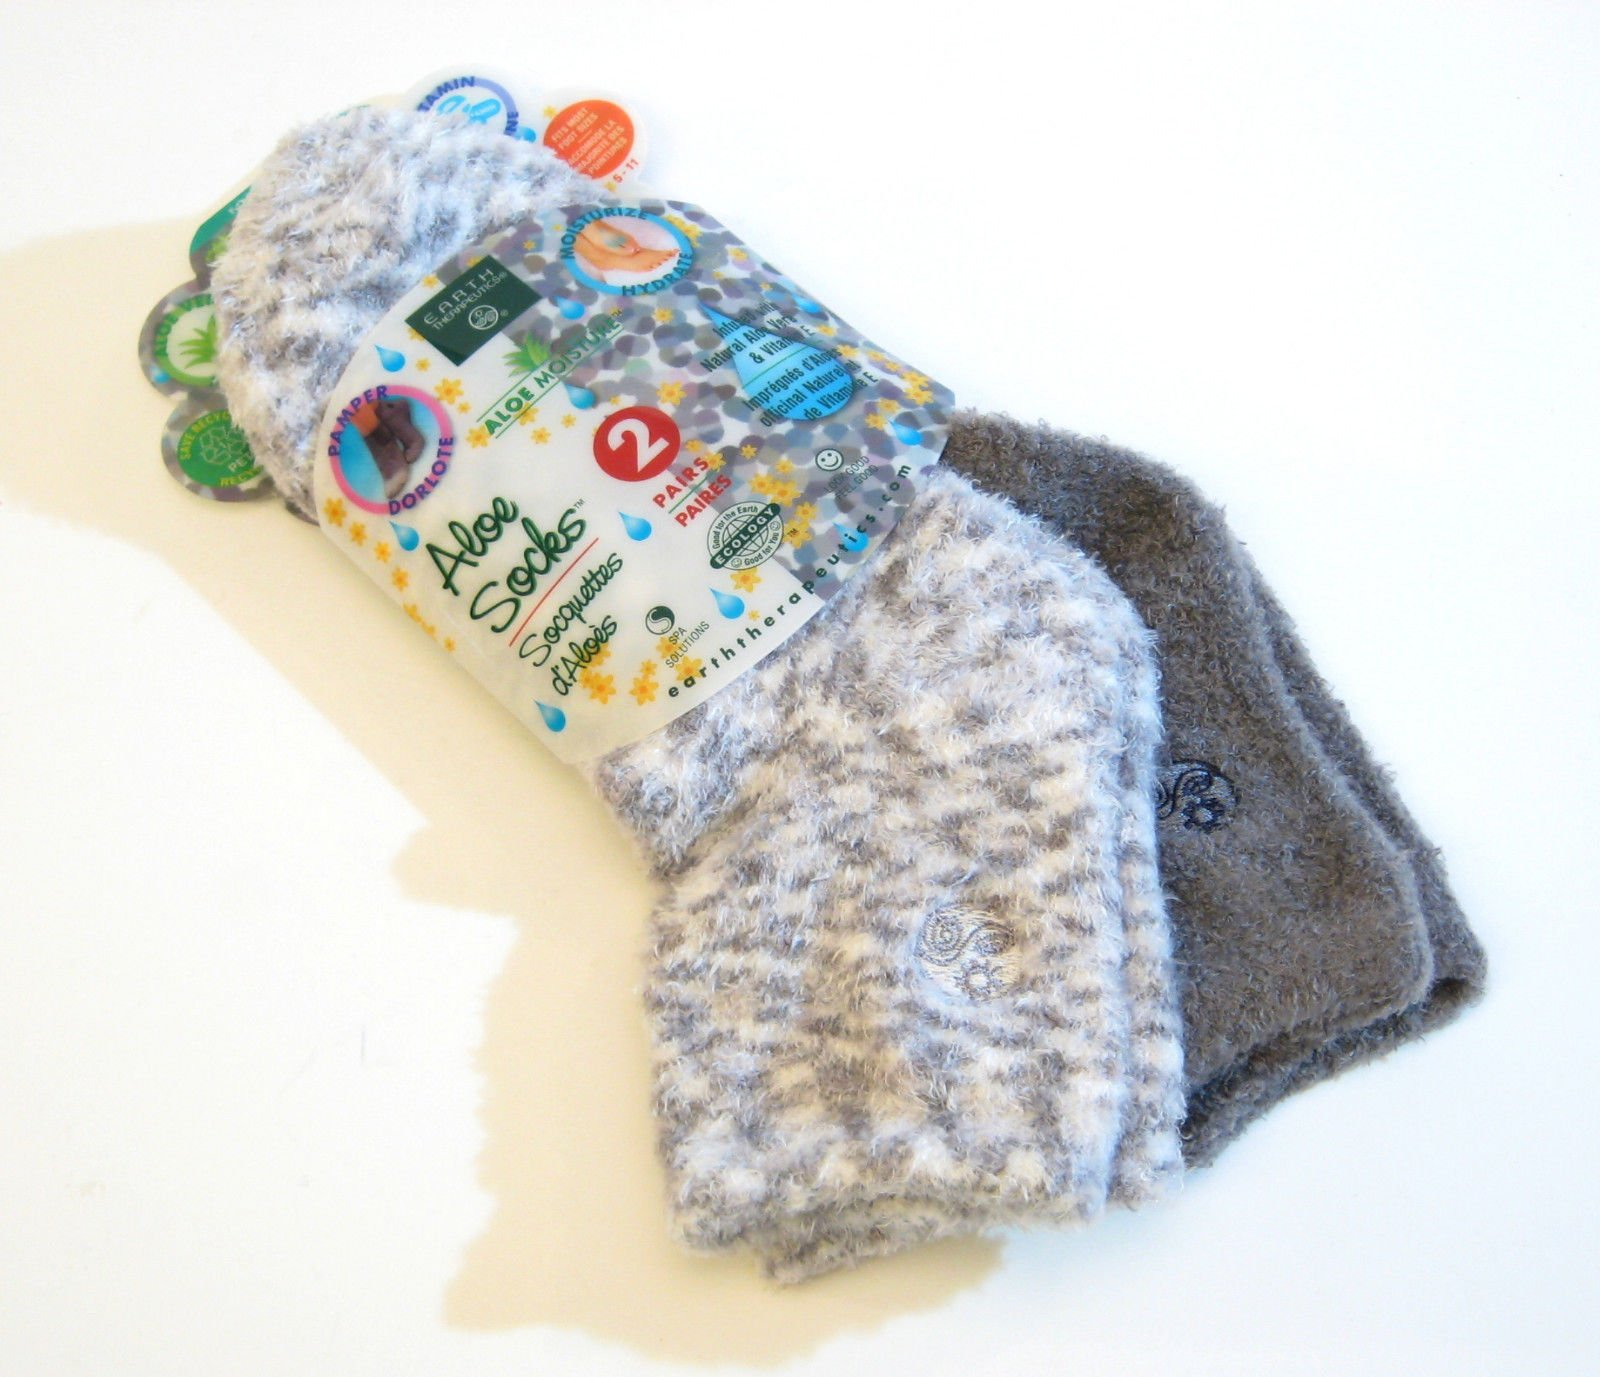 Aloe Moisture Socks by Earth Therapeutics, 2 Pack: Gray, Plaid, Infused with Natural Aloe Vera Vitamin E